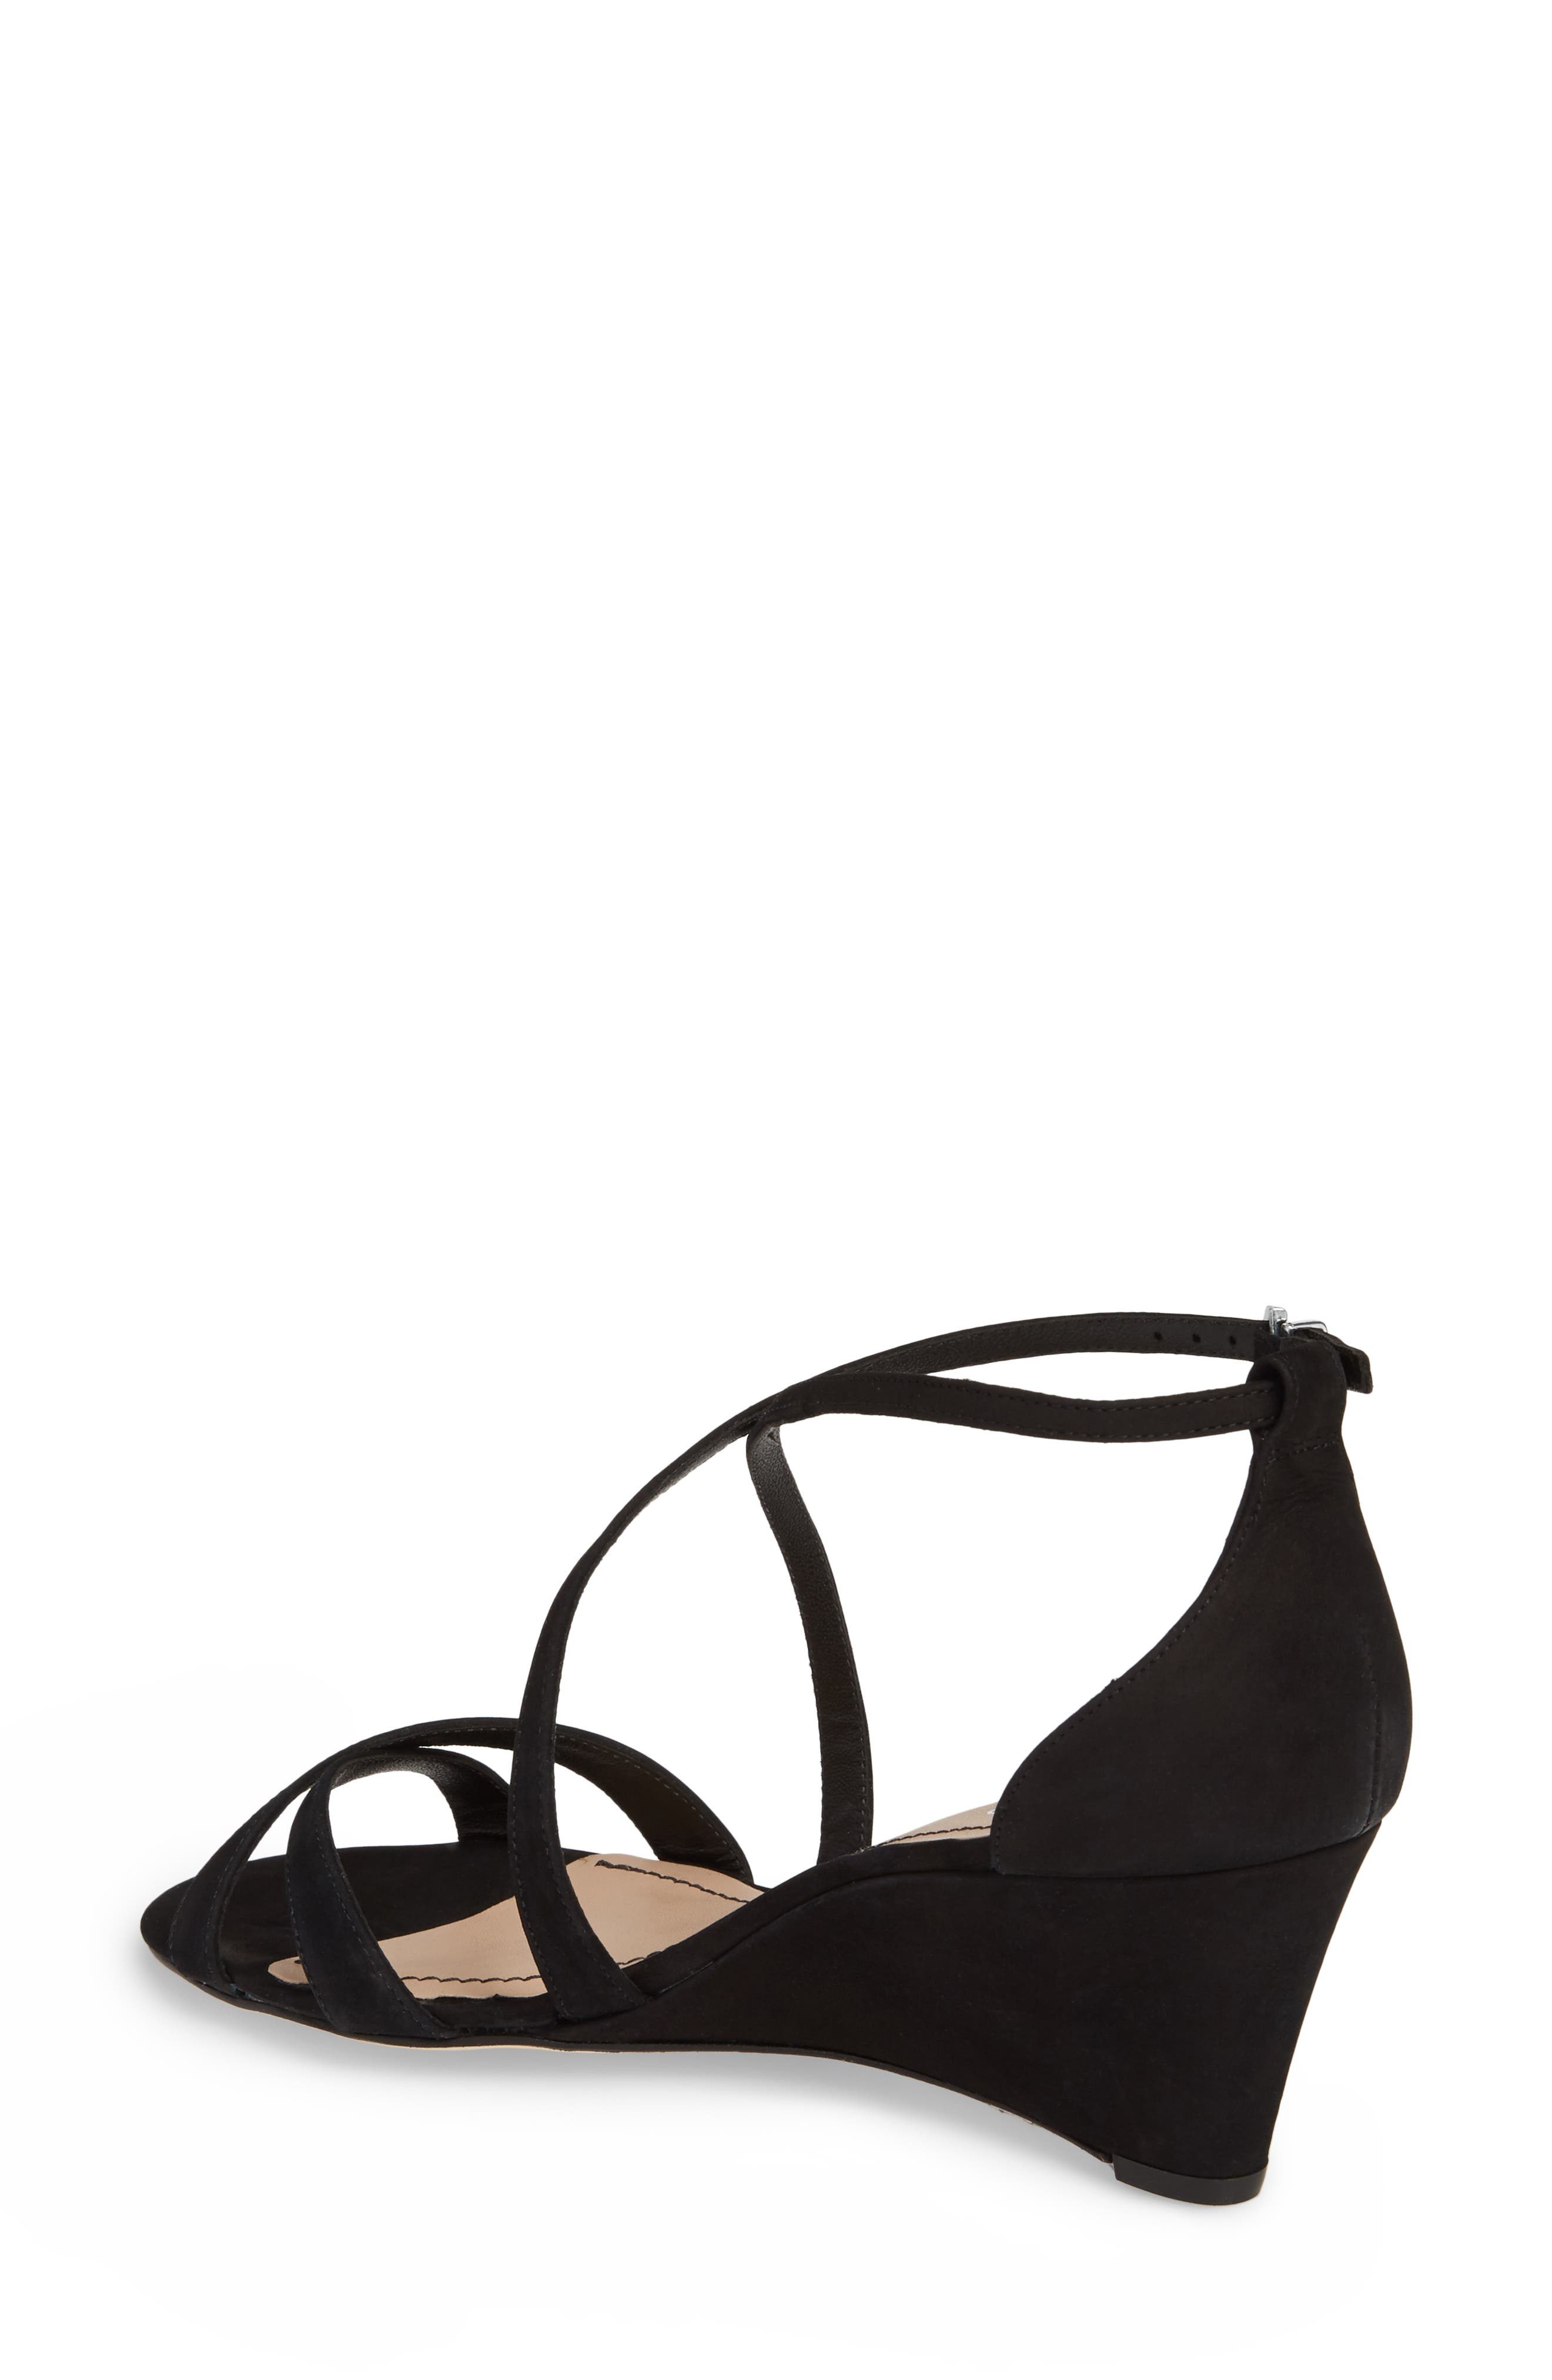 KLUB NICO,                             Kaissa Sandal,                             Alternate thumbnail 2, color,                             BLACK NUBUCK LEATHER